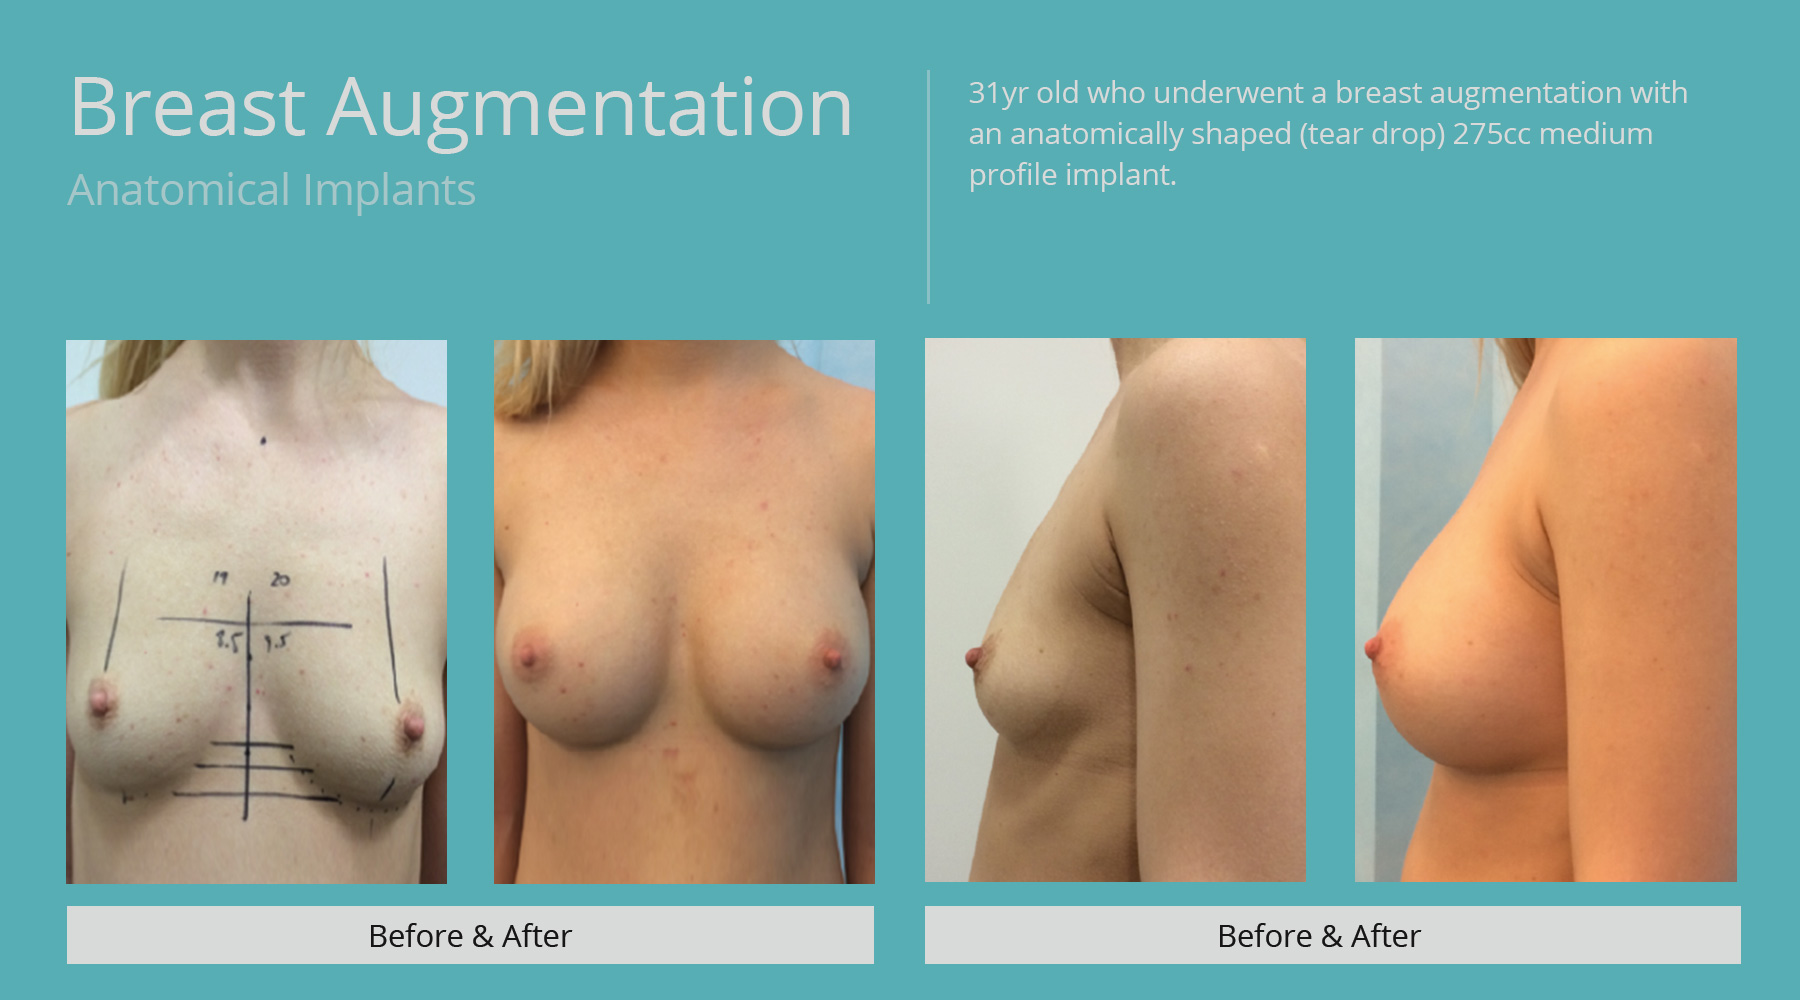 Breast-Augmentation-anatomical-11